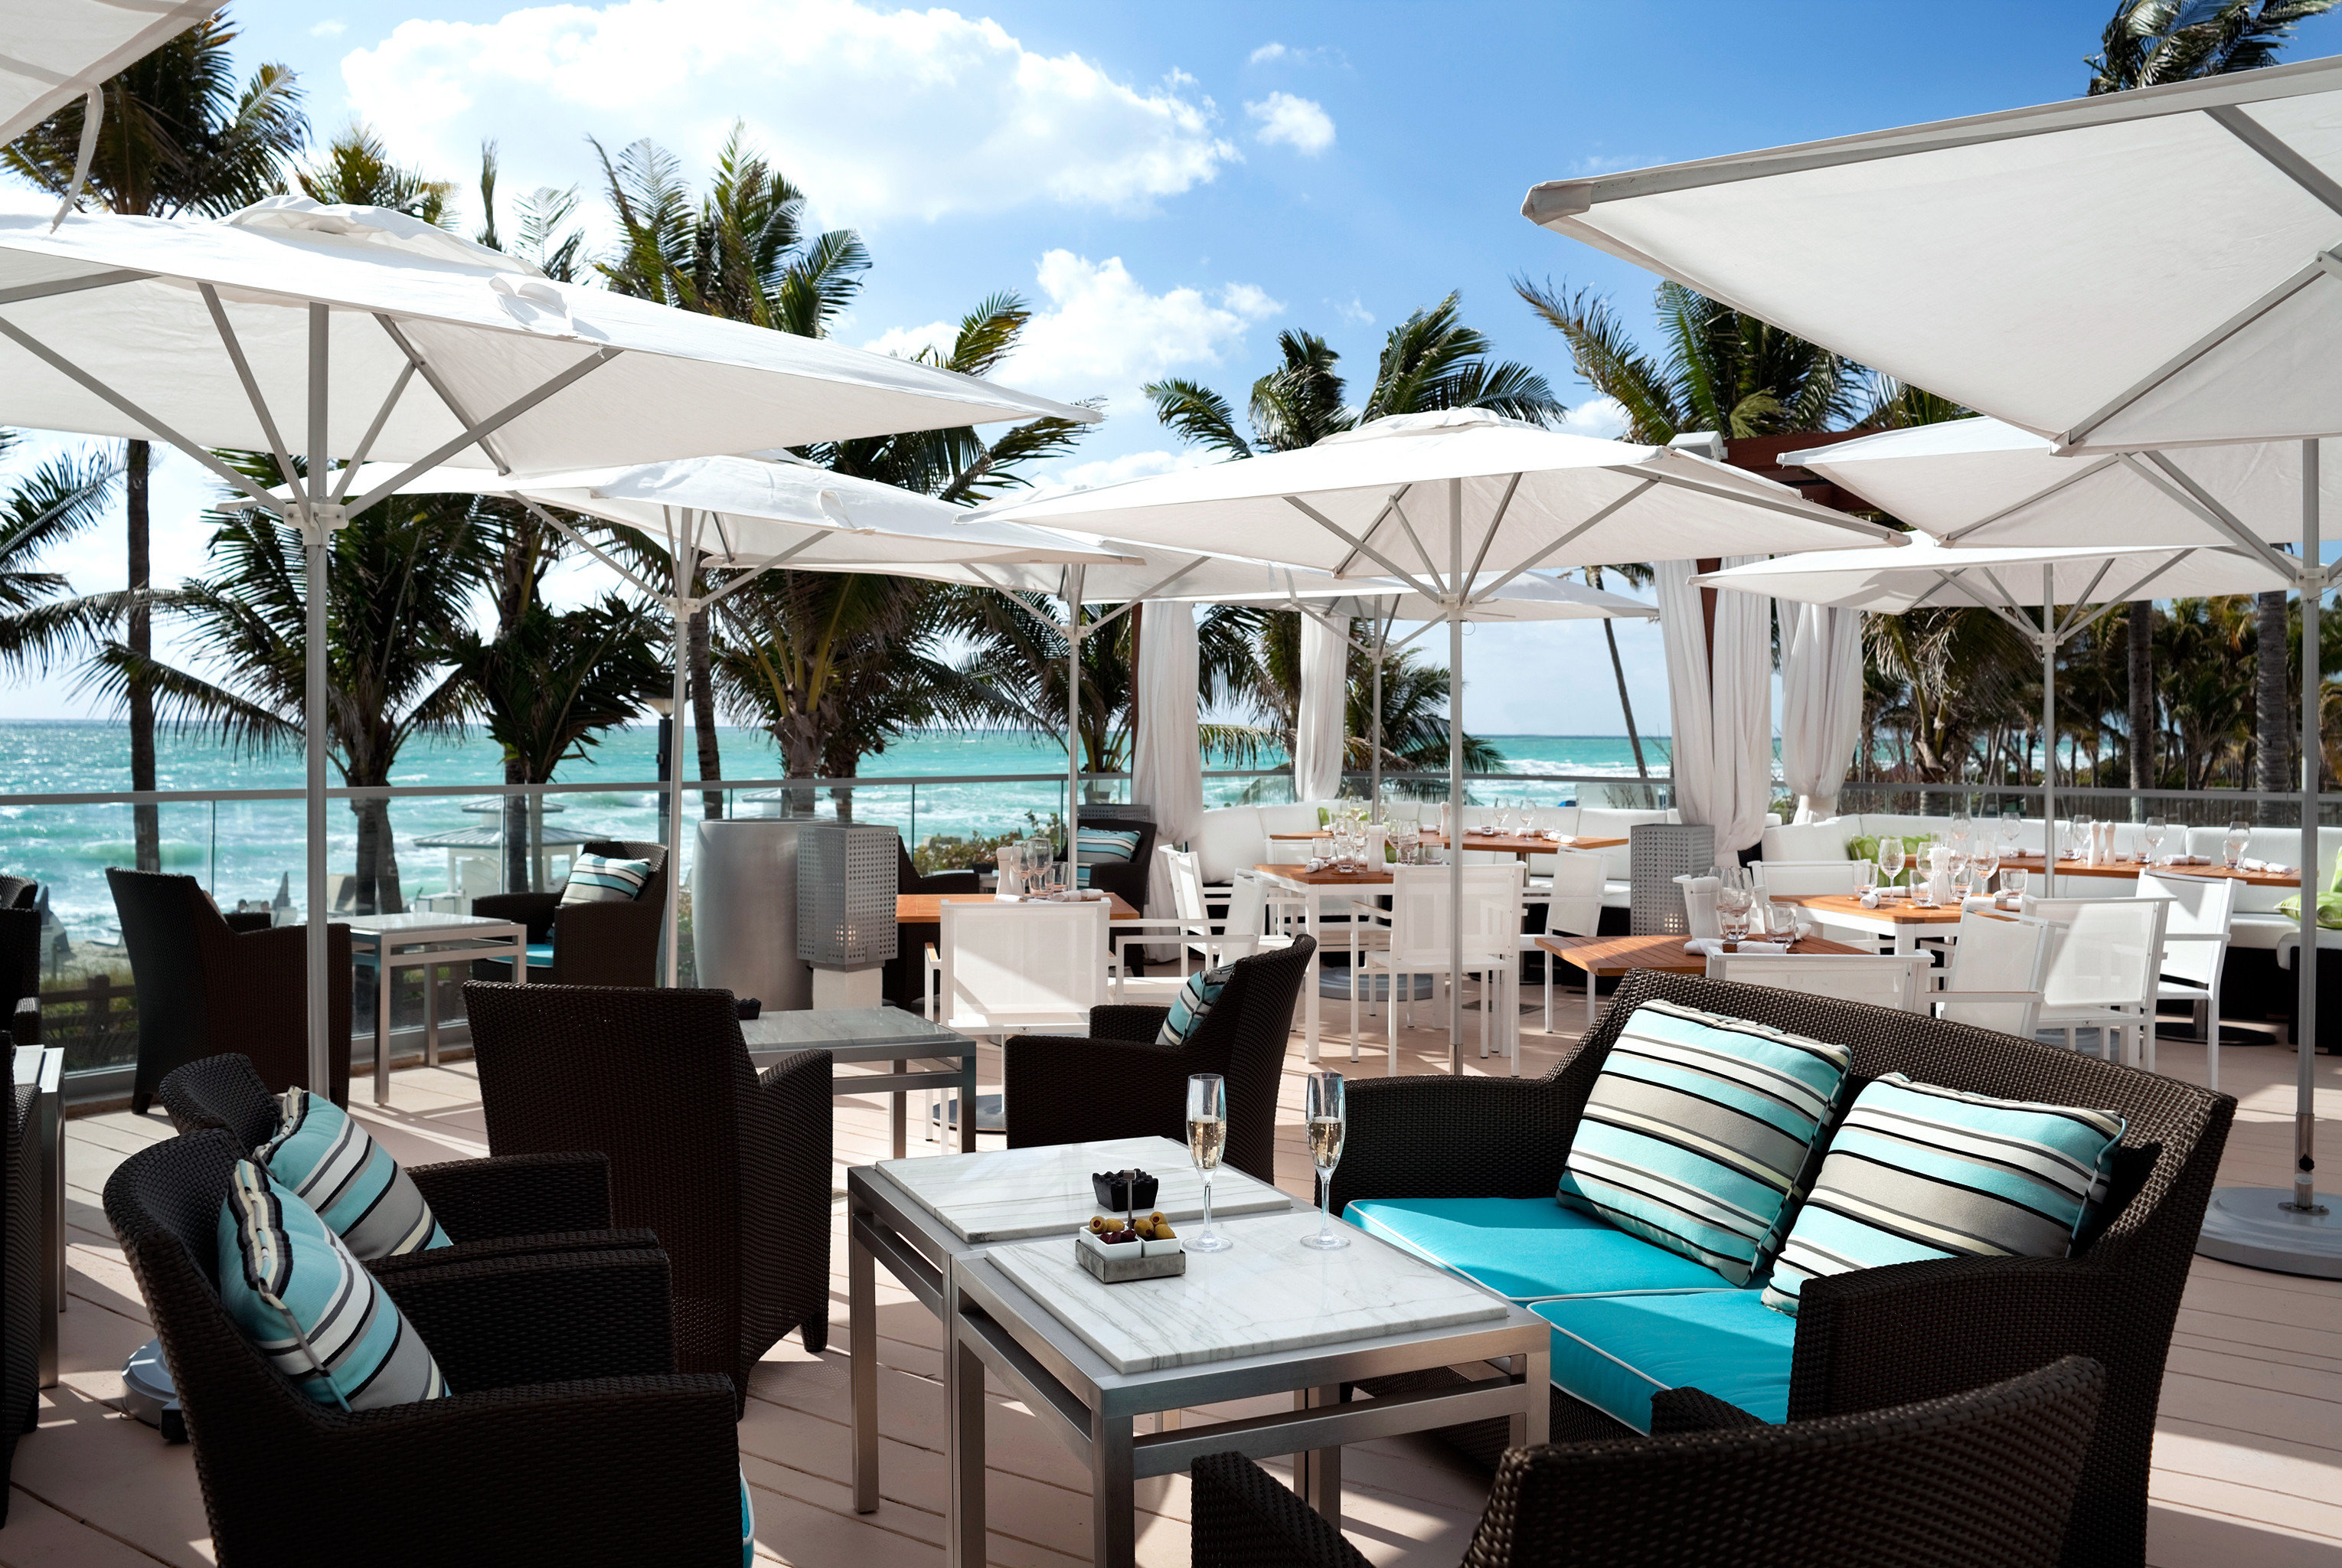 Balcony Dining Drink Eat Hotels Outdoors Patio Resort sky outdoor table tree chair restaurant vacation estate caribbean yacht furniture vehicle Boat area set Deck several